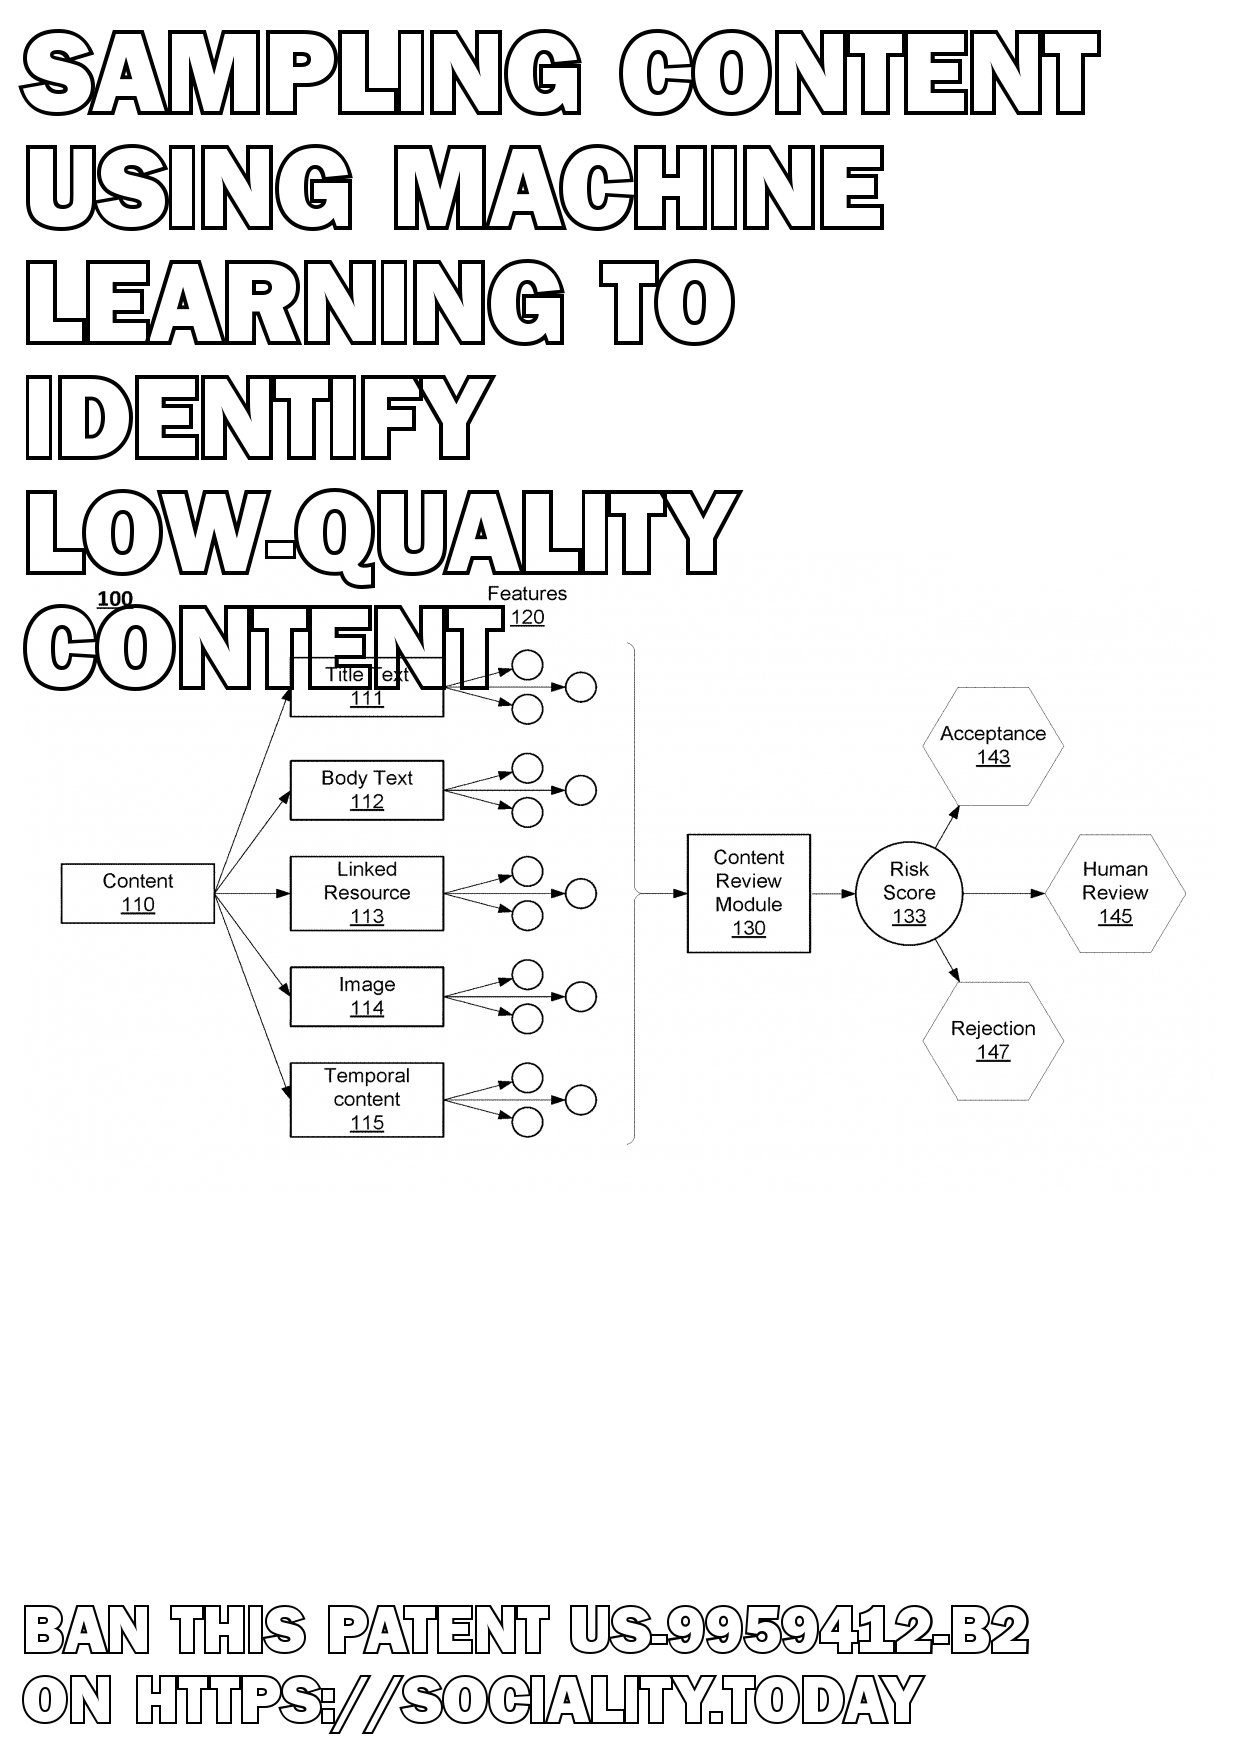 Sampling content using machine learning to identify low-quality content  - US-9959412-B2